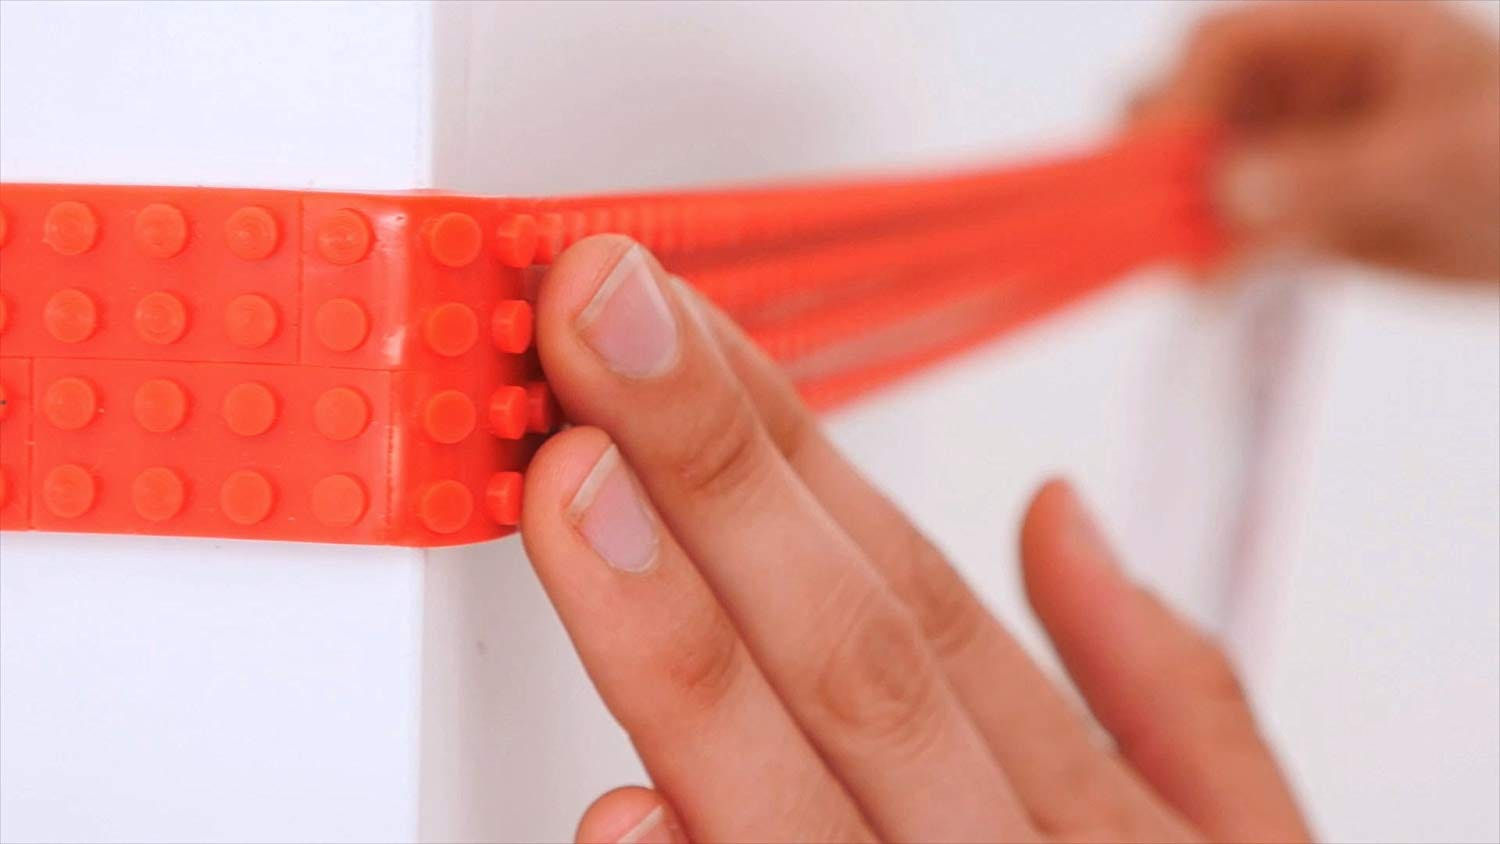 This flexible, sticky tape lets you build LEGO decorations almost anywhere.